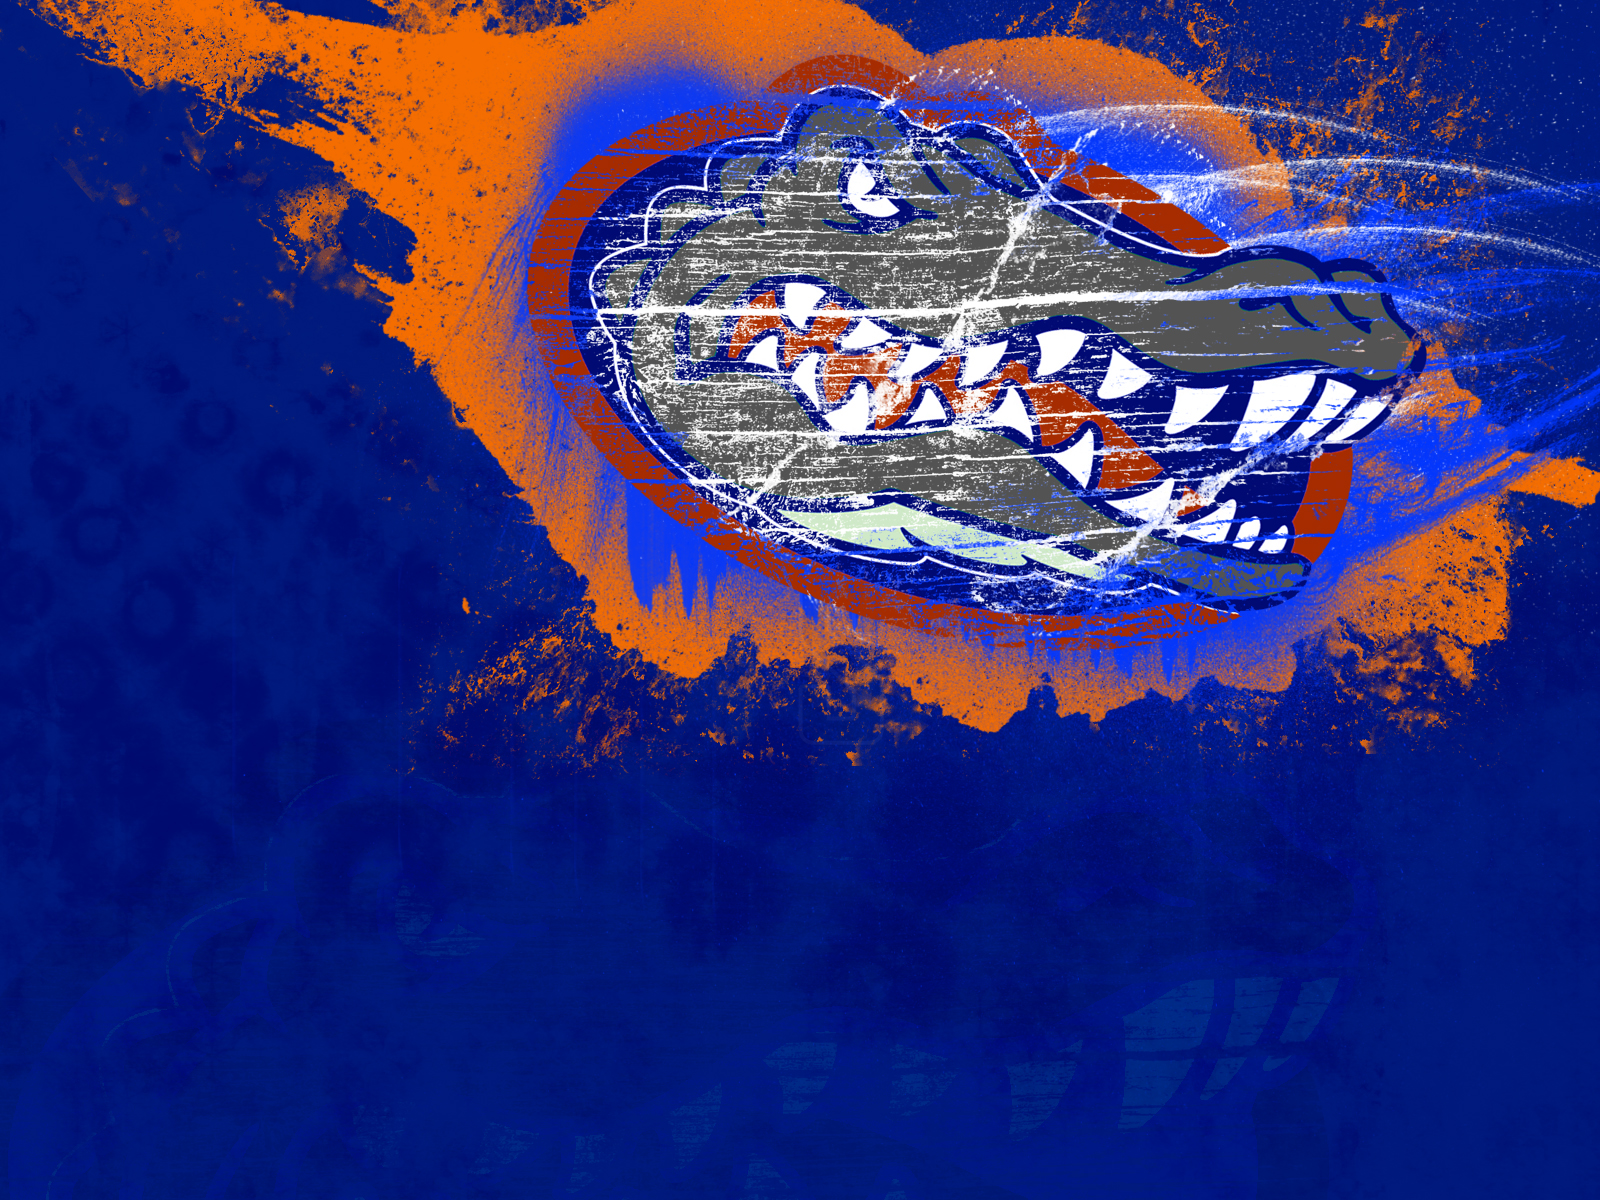 Cool florida gator wallpapers wallpapersafari for Florida cool